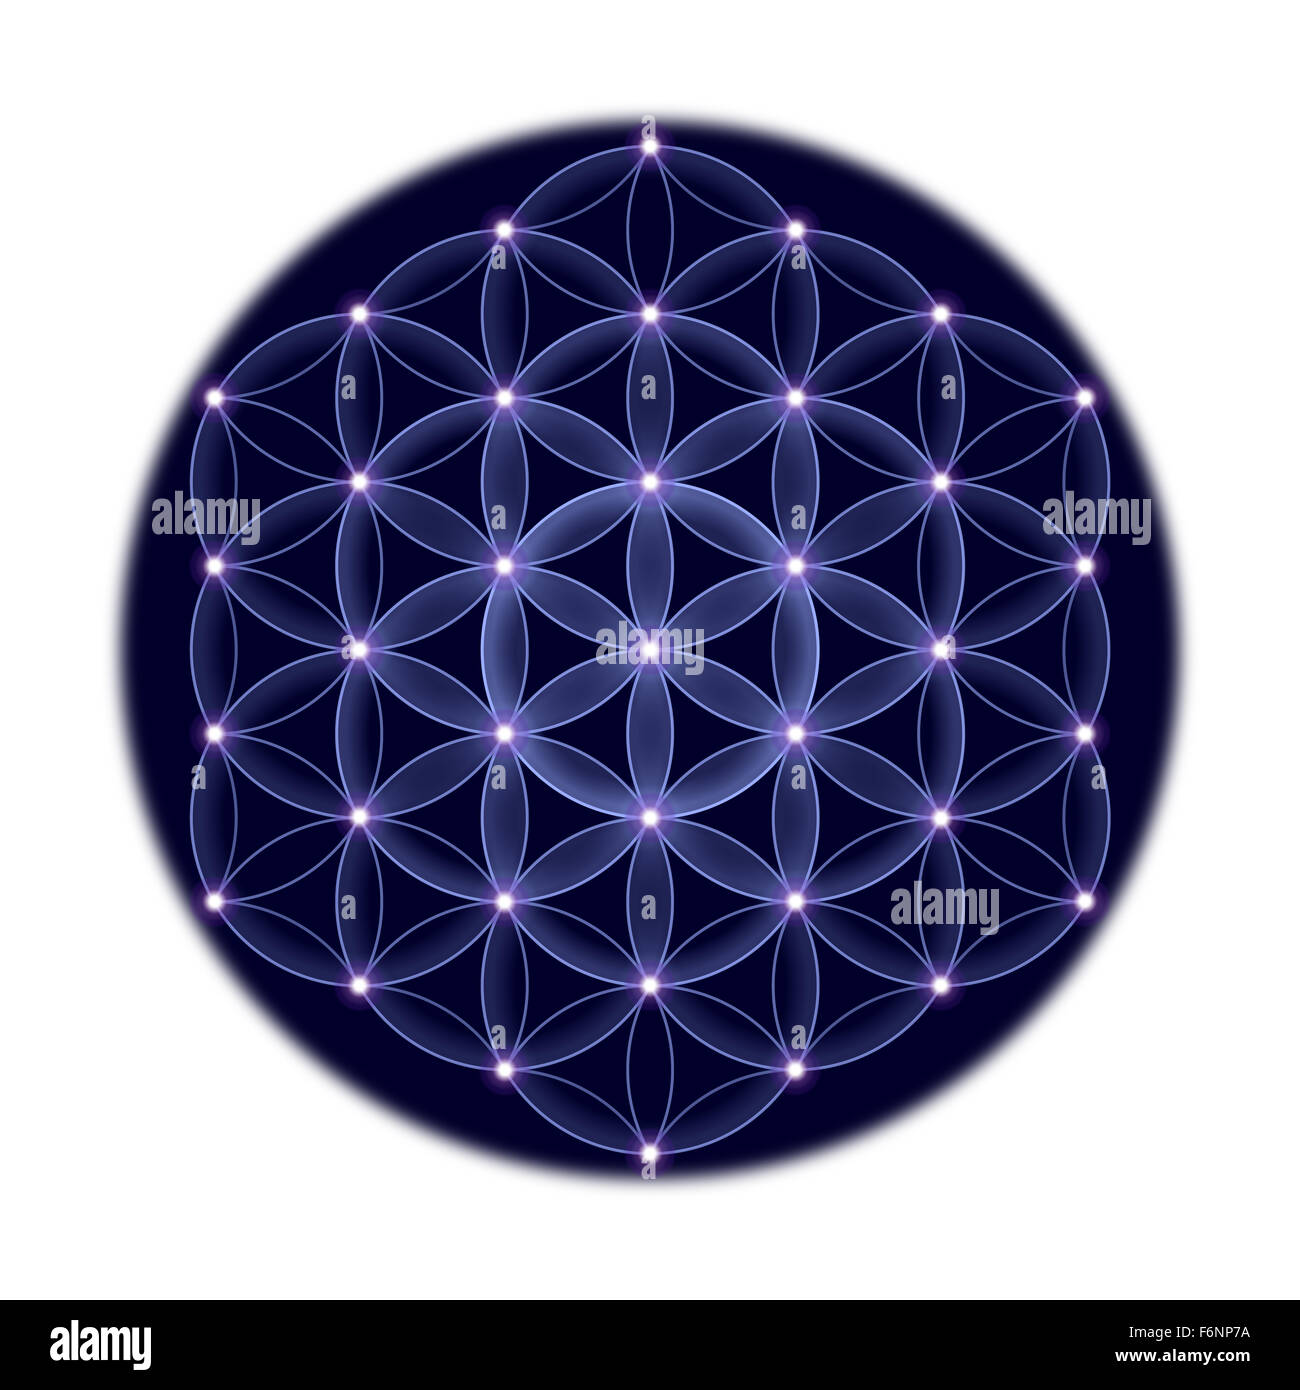 Flower Of Life Symbol Ancient Stock Photos & Flower Of